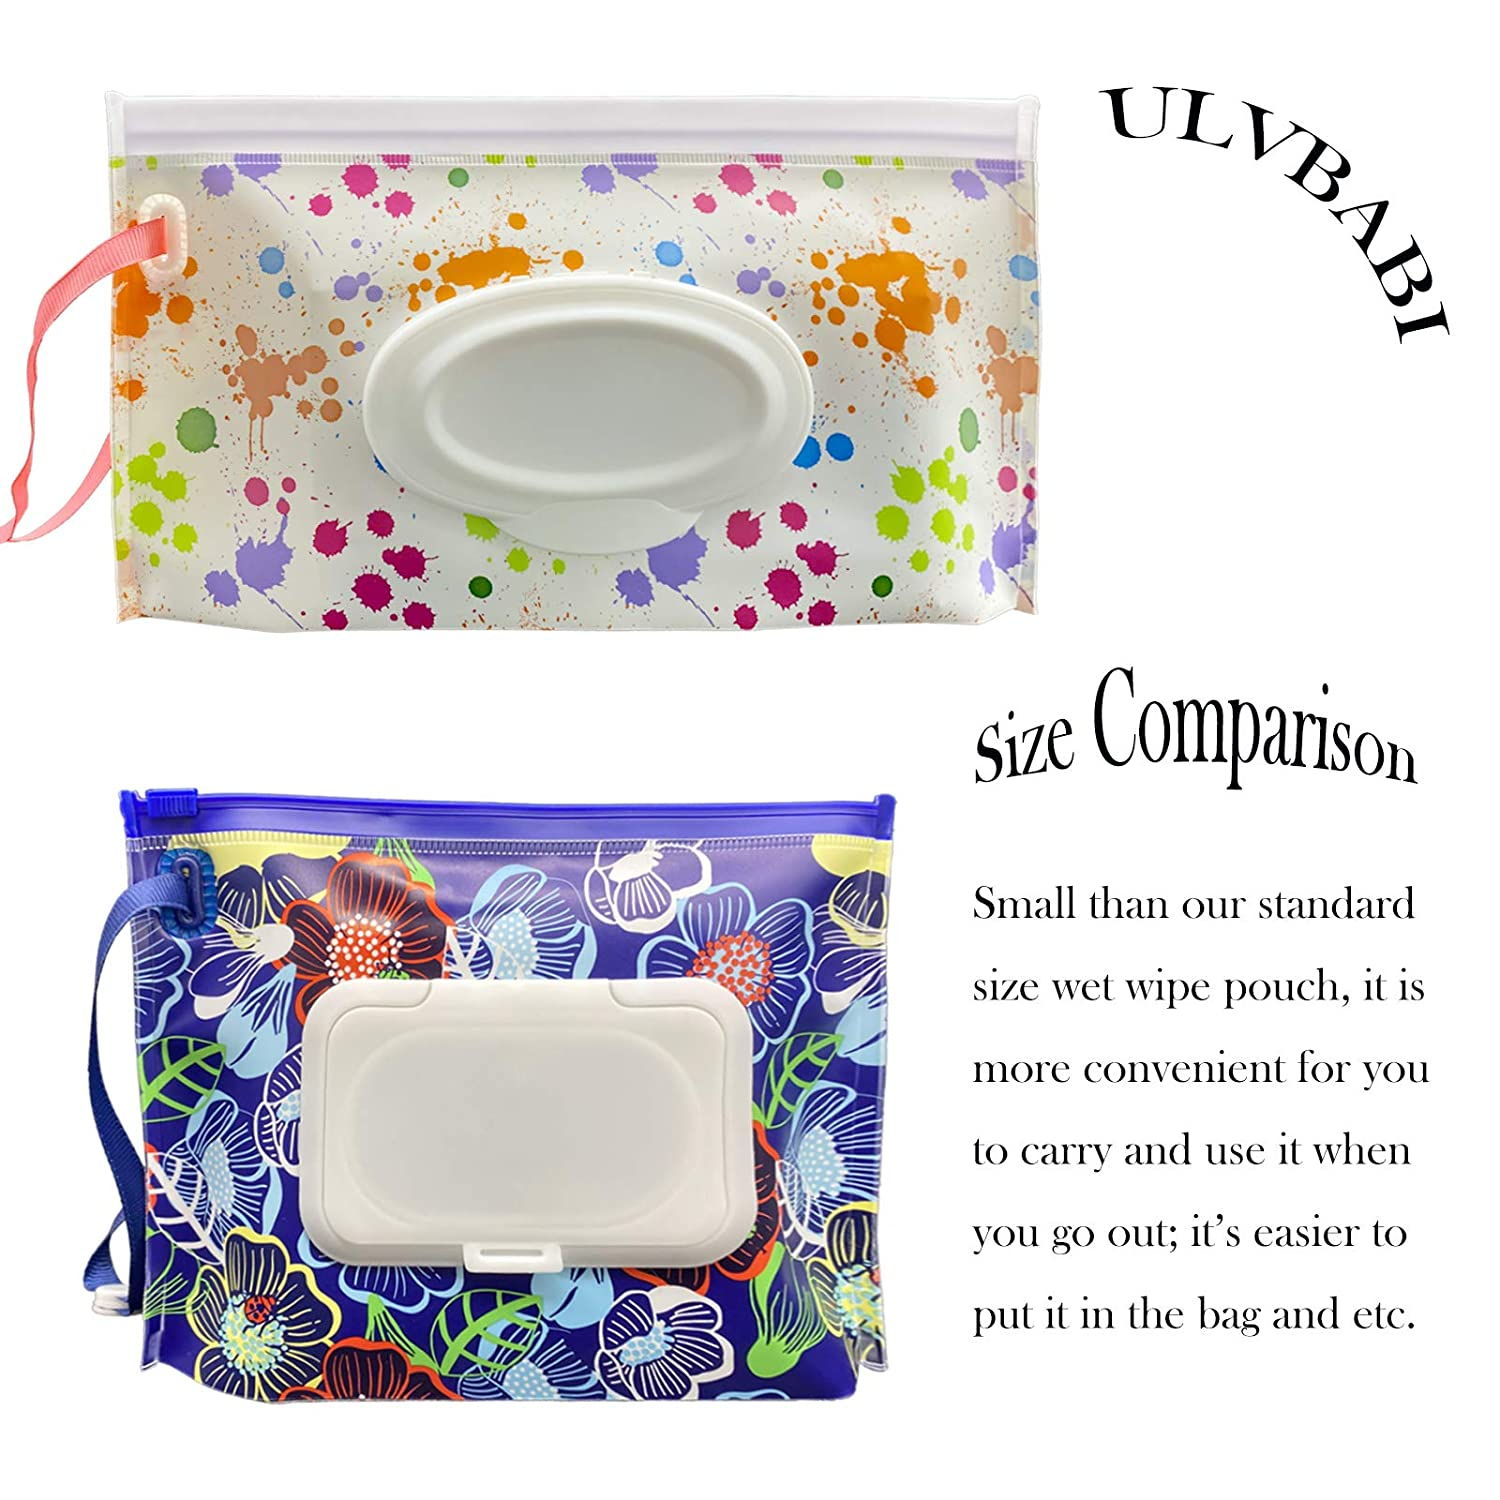 Flower Pattern ULVBABI 2 Pack Portable Wet Wipe Pouch Container Reusable /& Refillable Baby Wipes Dispenser Eco Friendly and Lightweight Handy Travel Diaper Wipes Carrying Case Holder